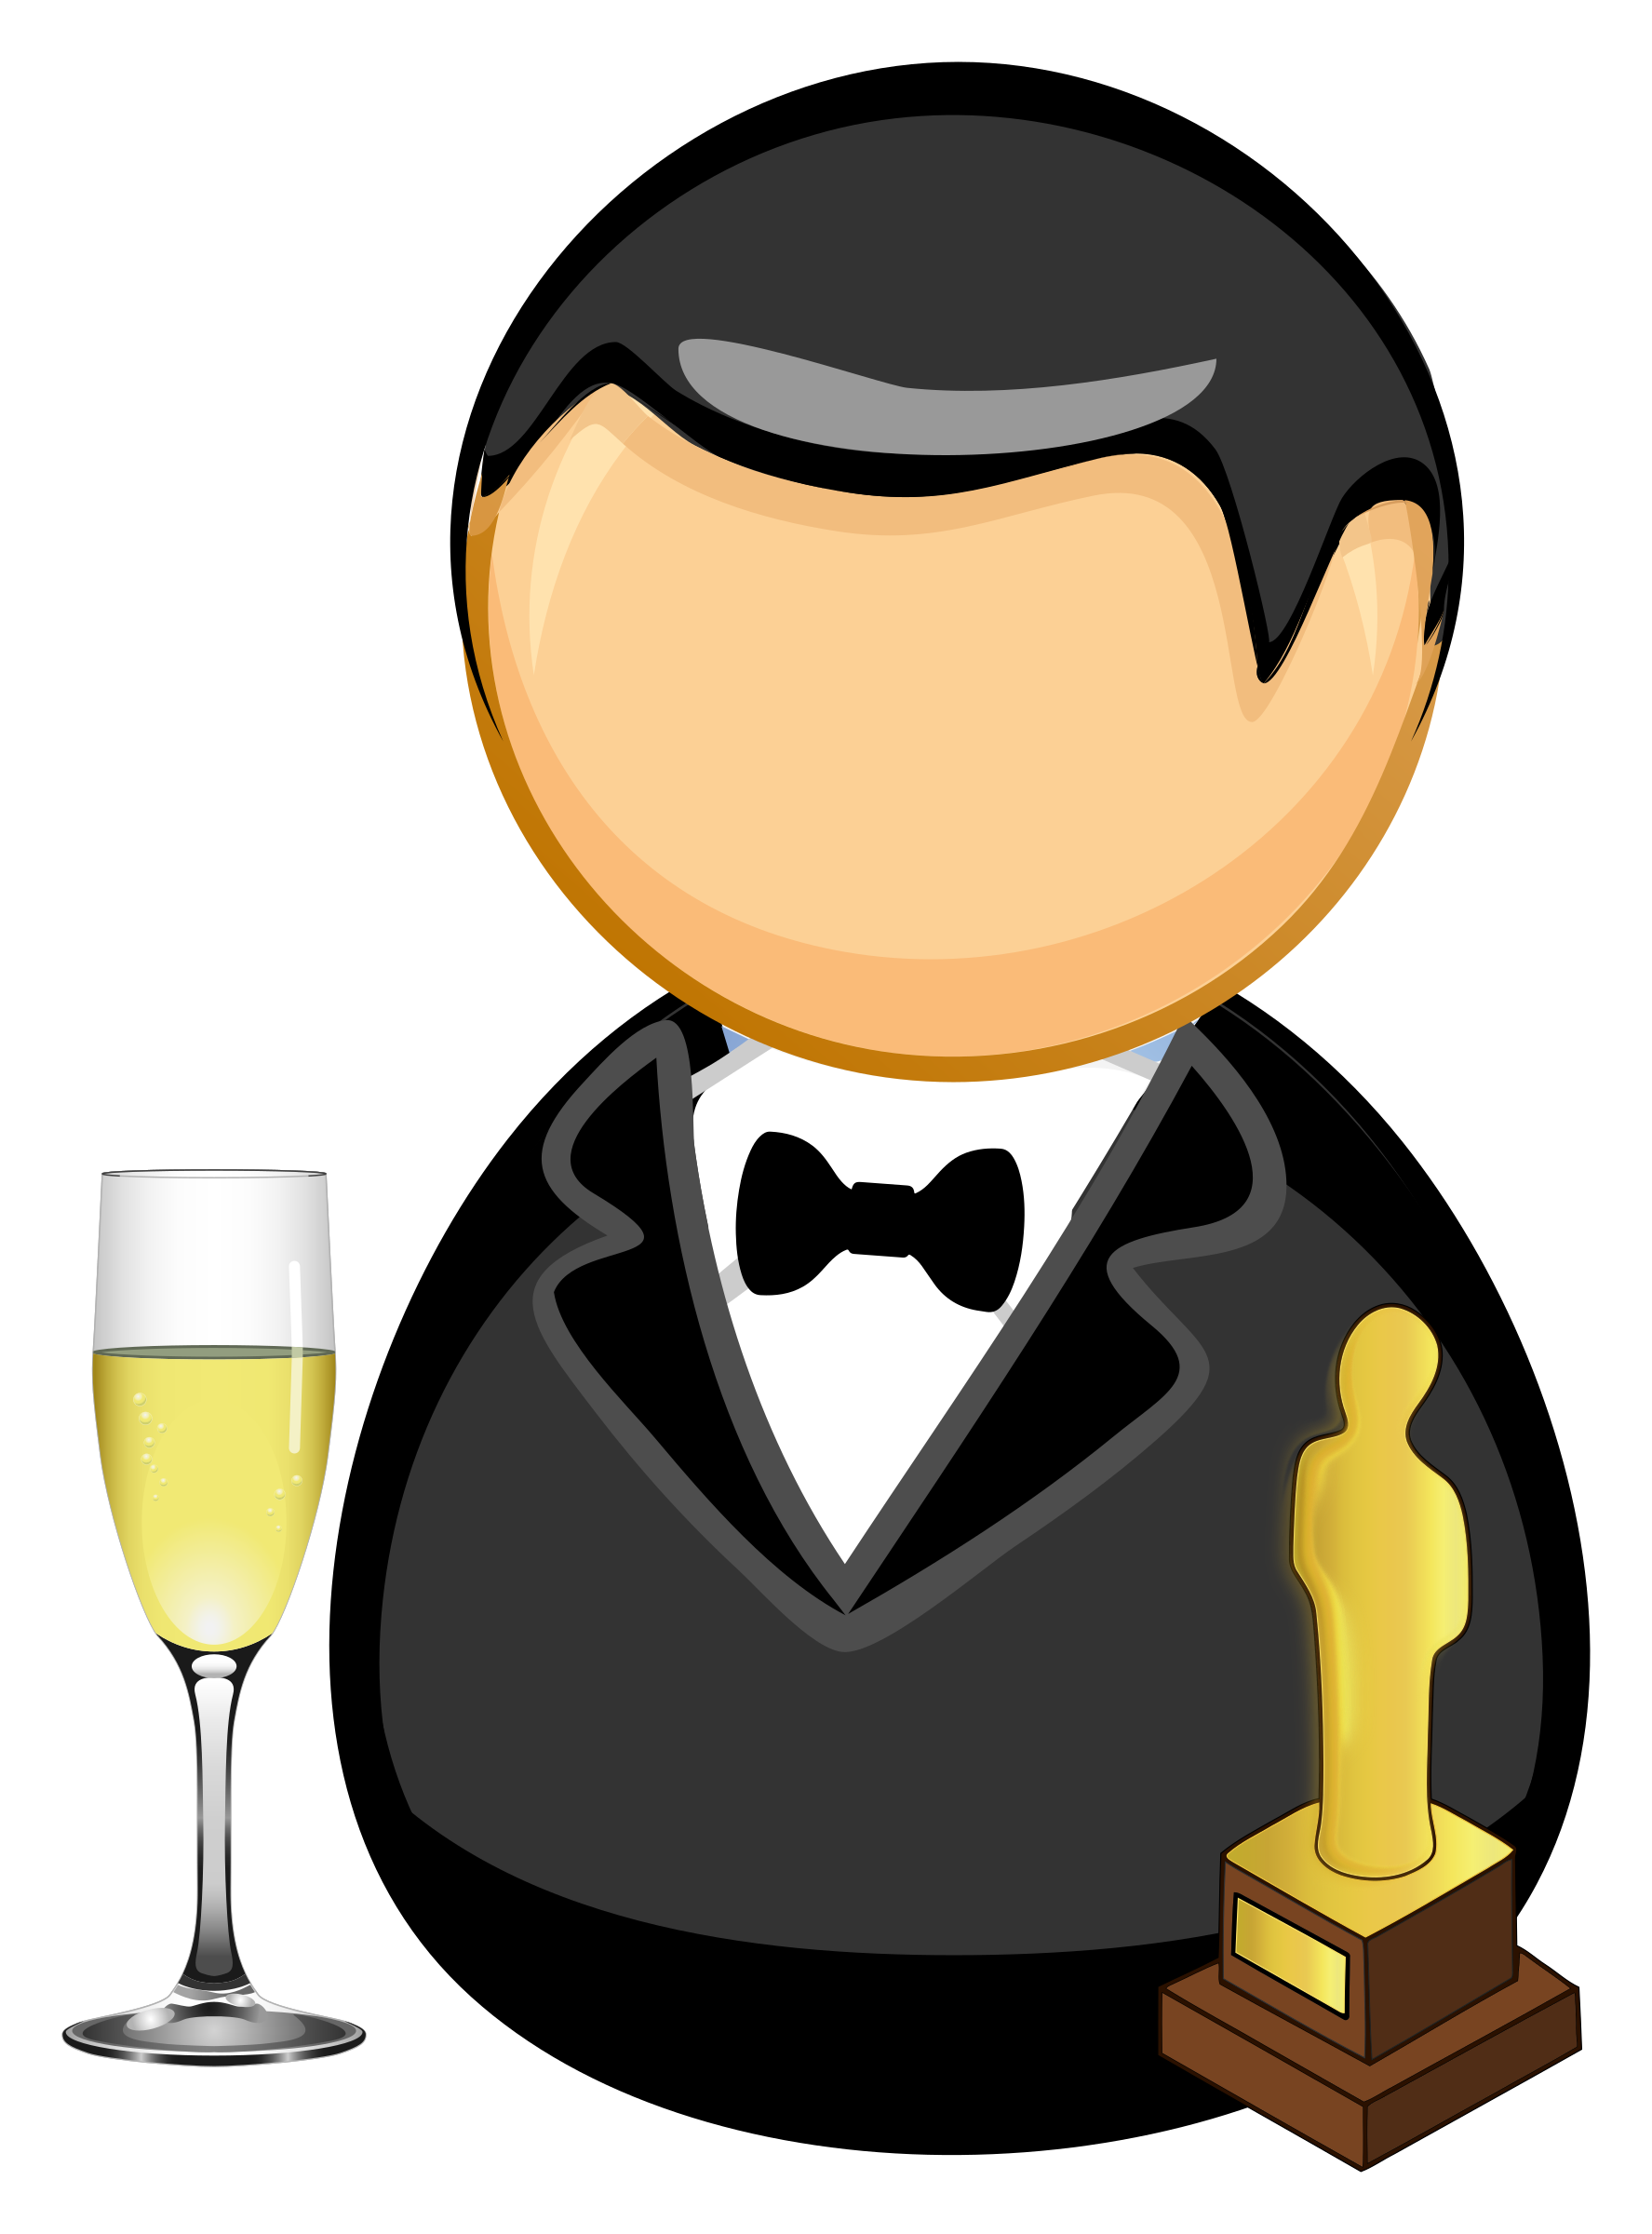 Movie star clipart clipart transparent Clipart - Movie star / actor clipart transparent